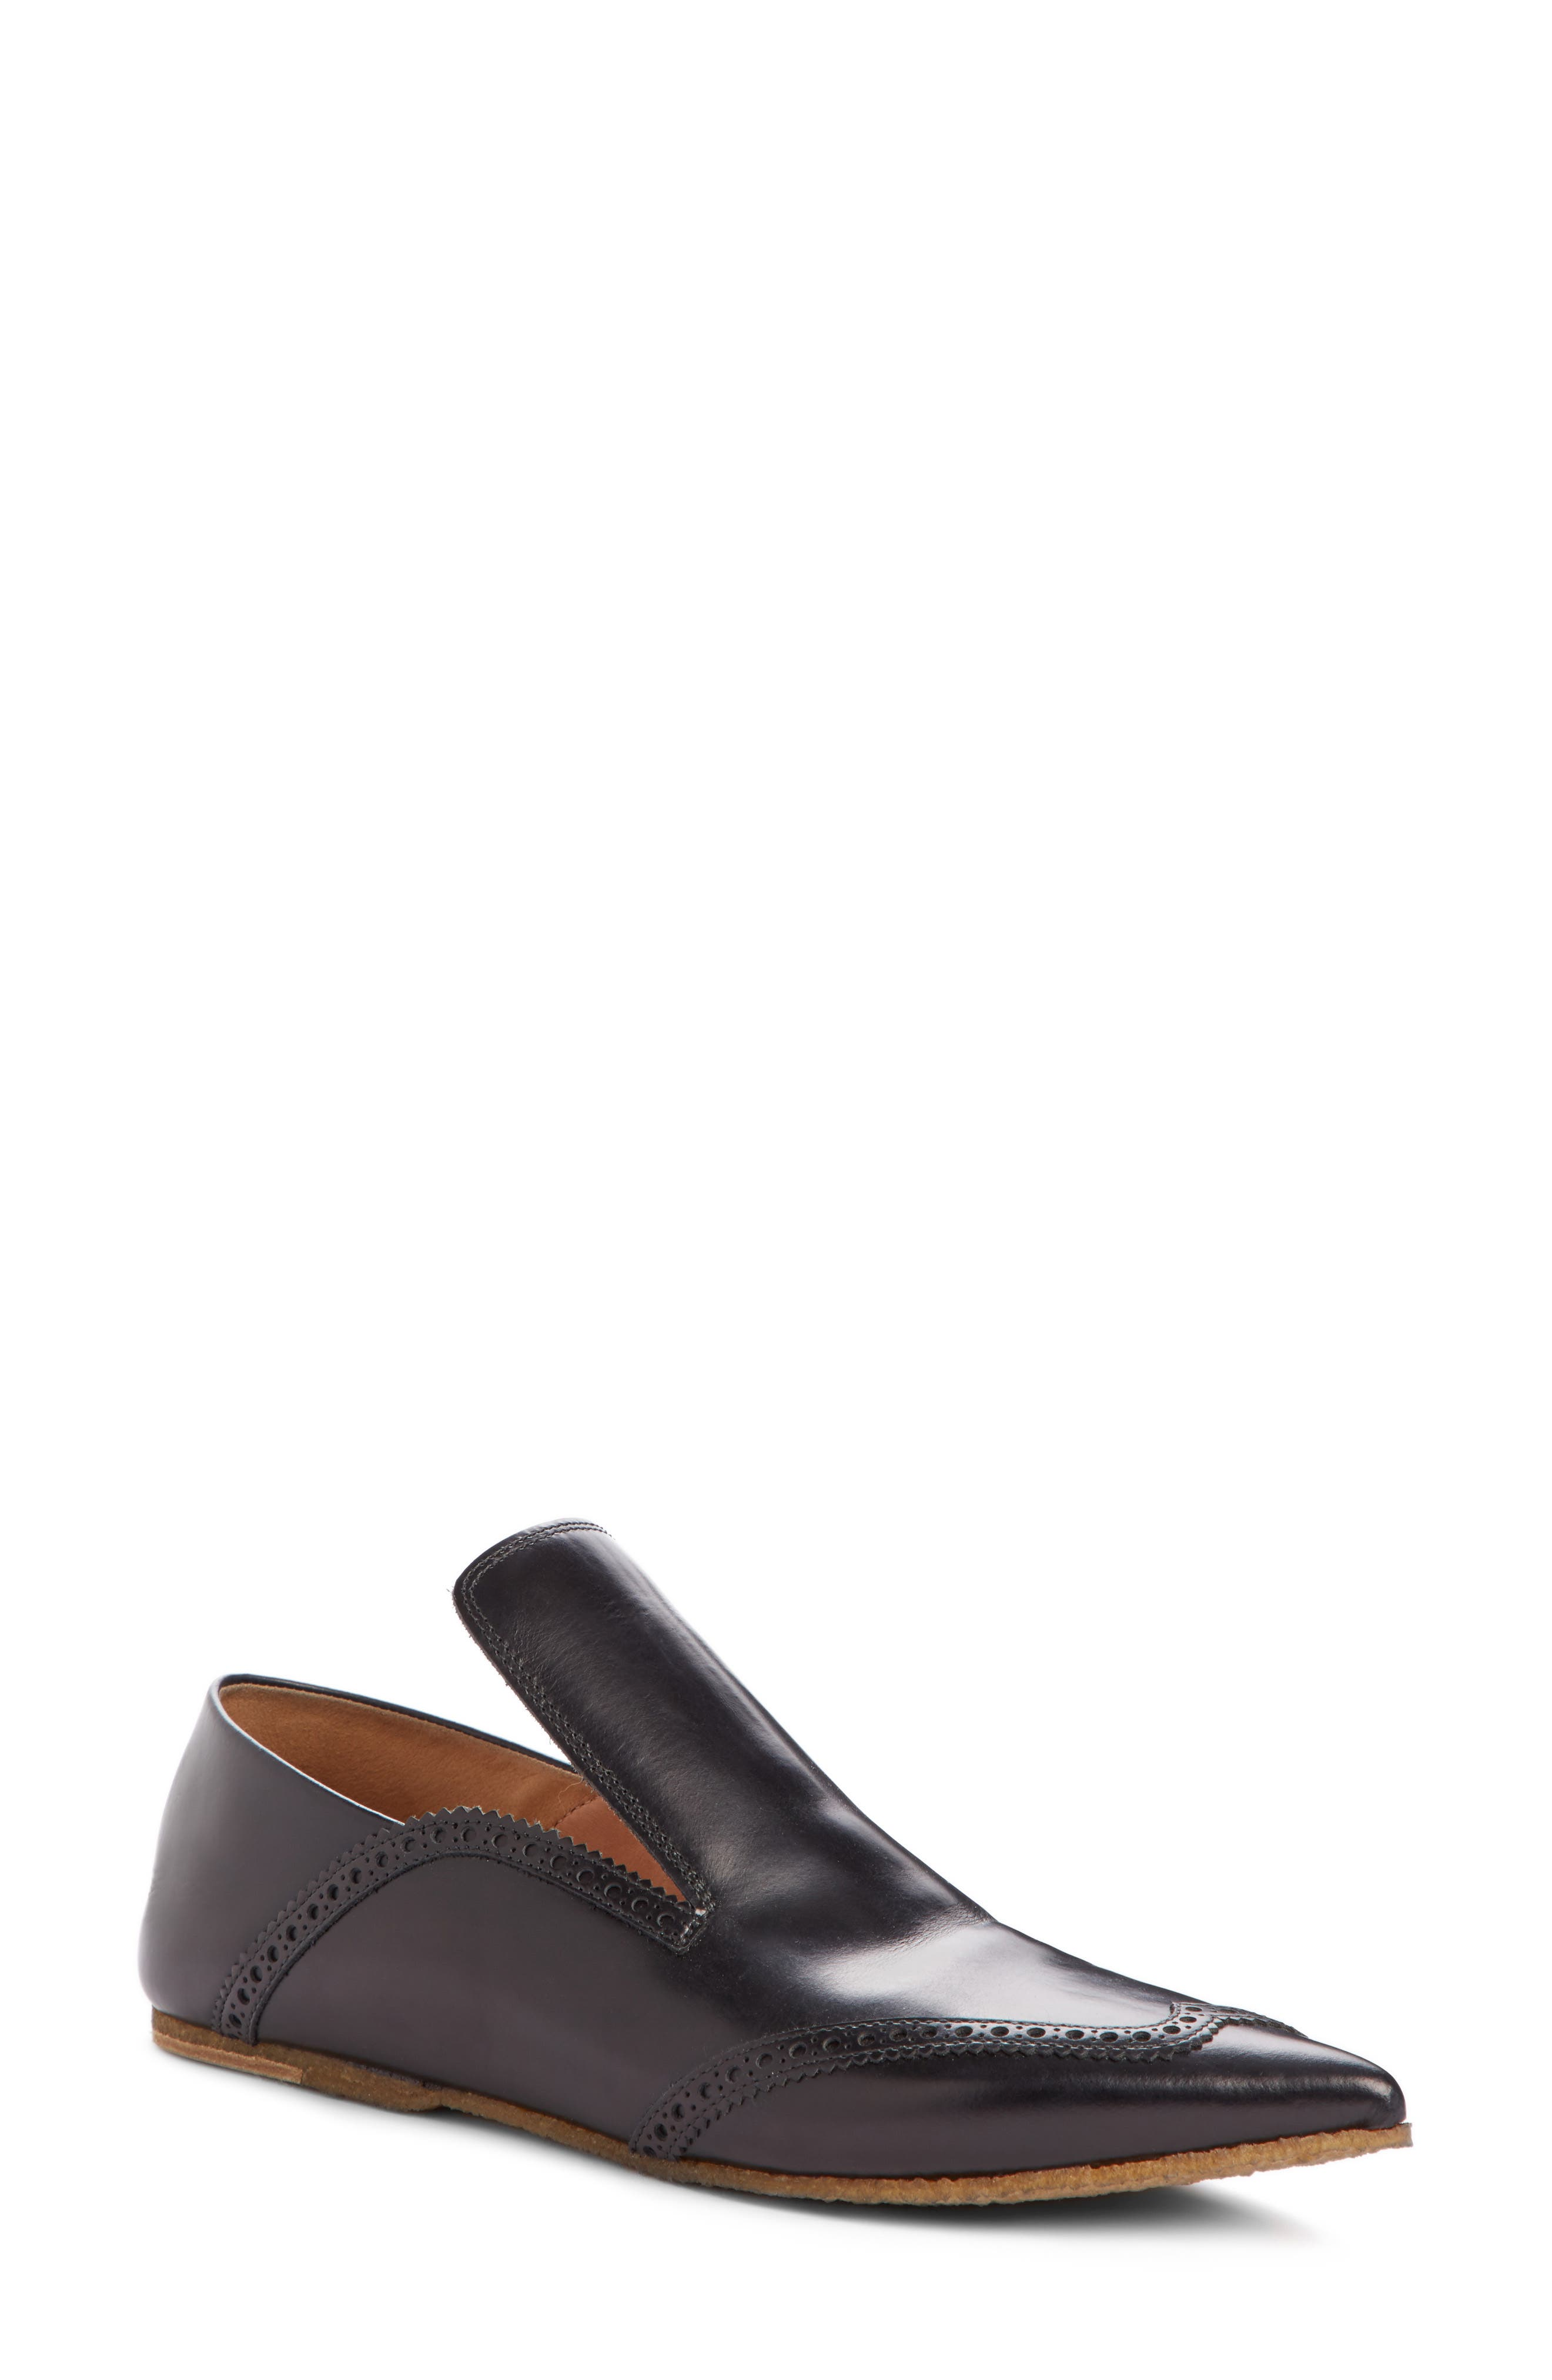 Pointy Toe Loafer,                         Main,                         color, Black